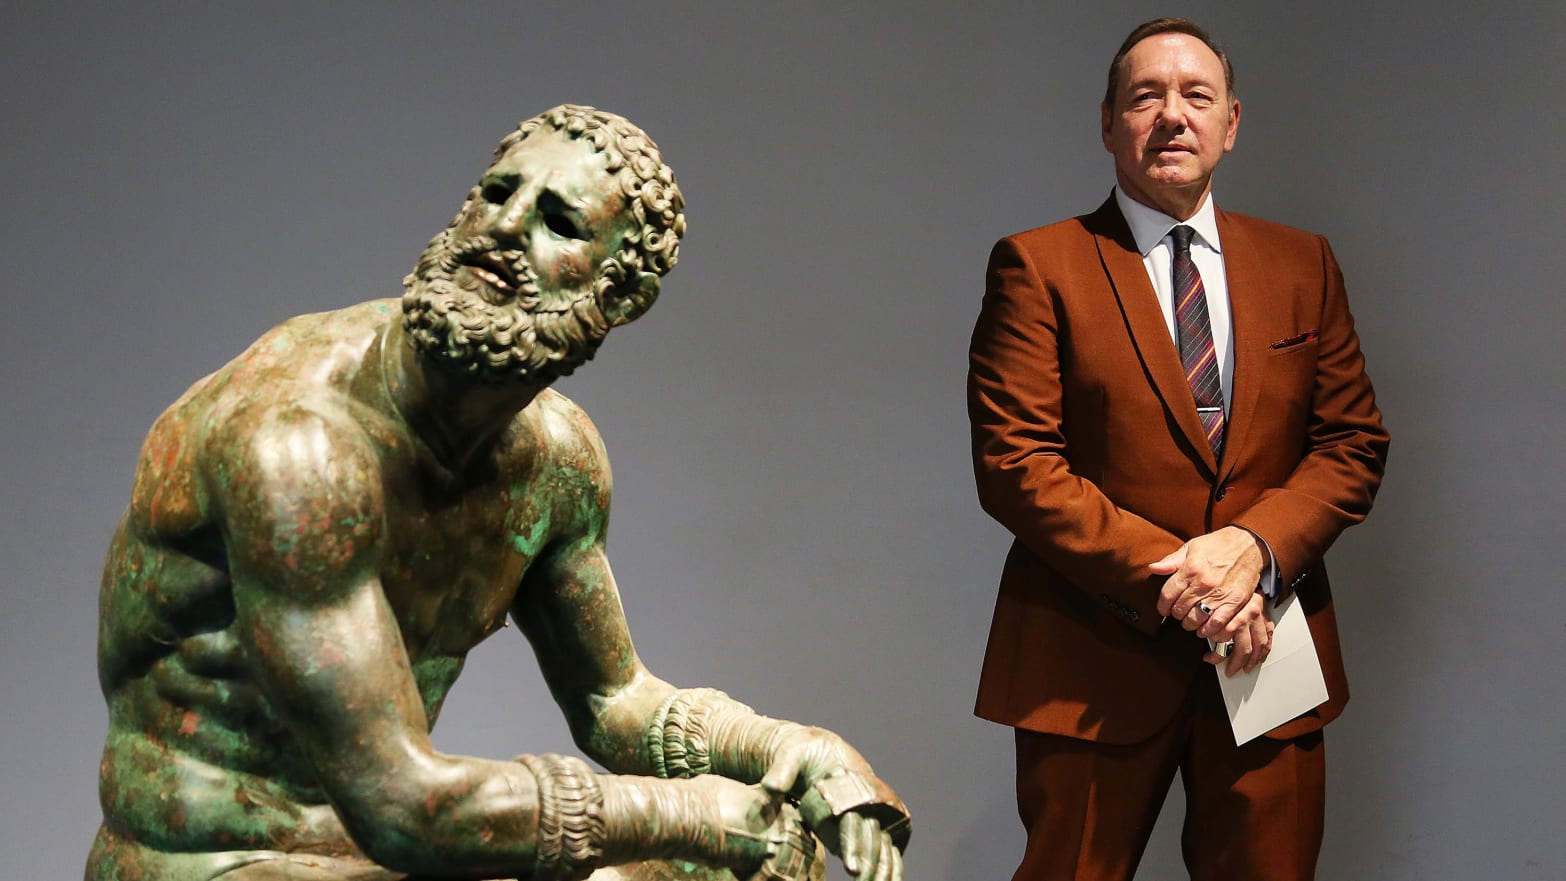 Kevin Spacey Uses Poem to Tell World: 'The More You're Wounded the Greater You Are, and the More Empty'